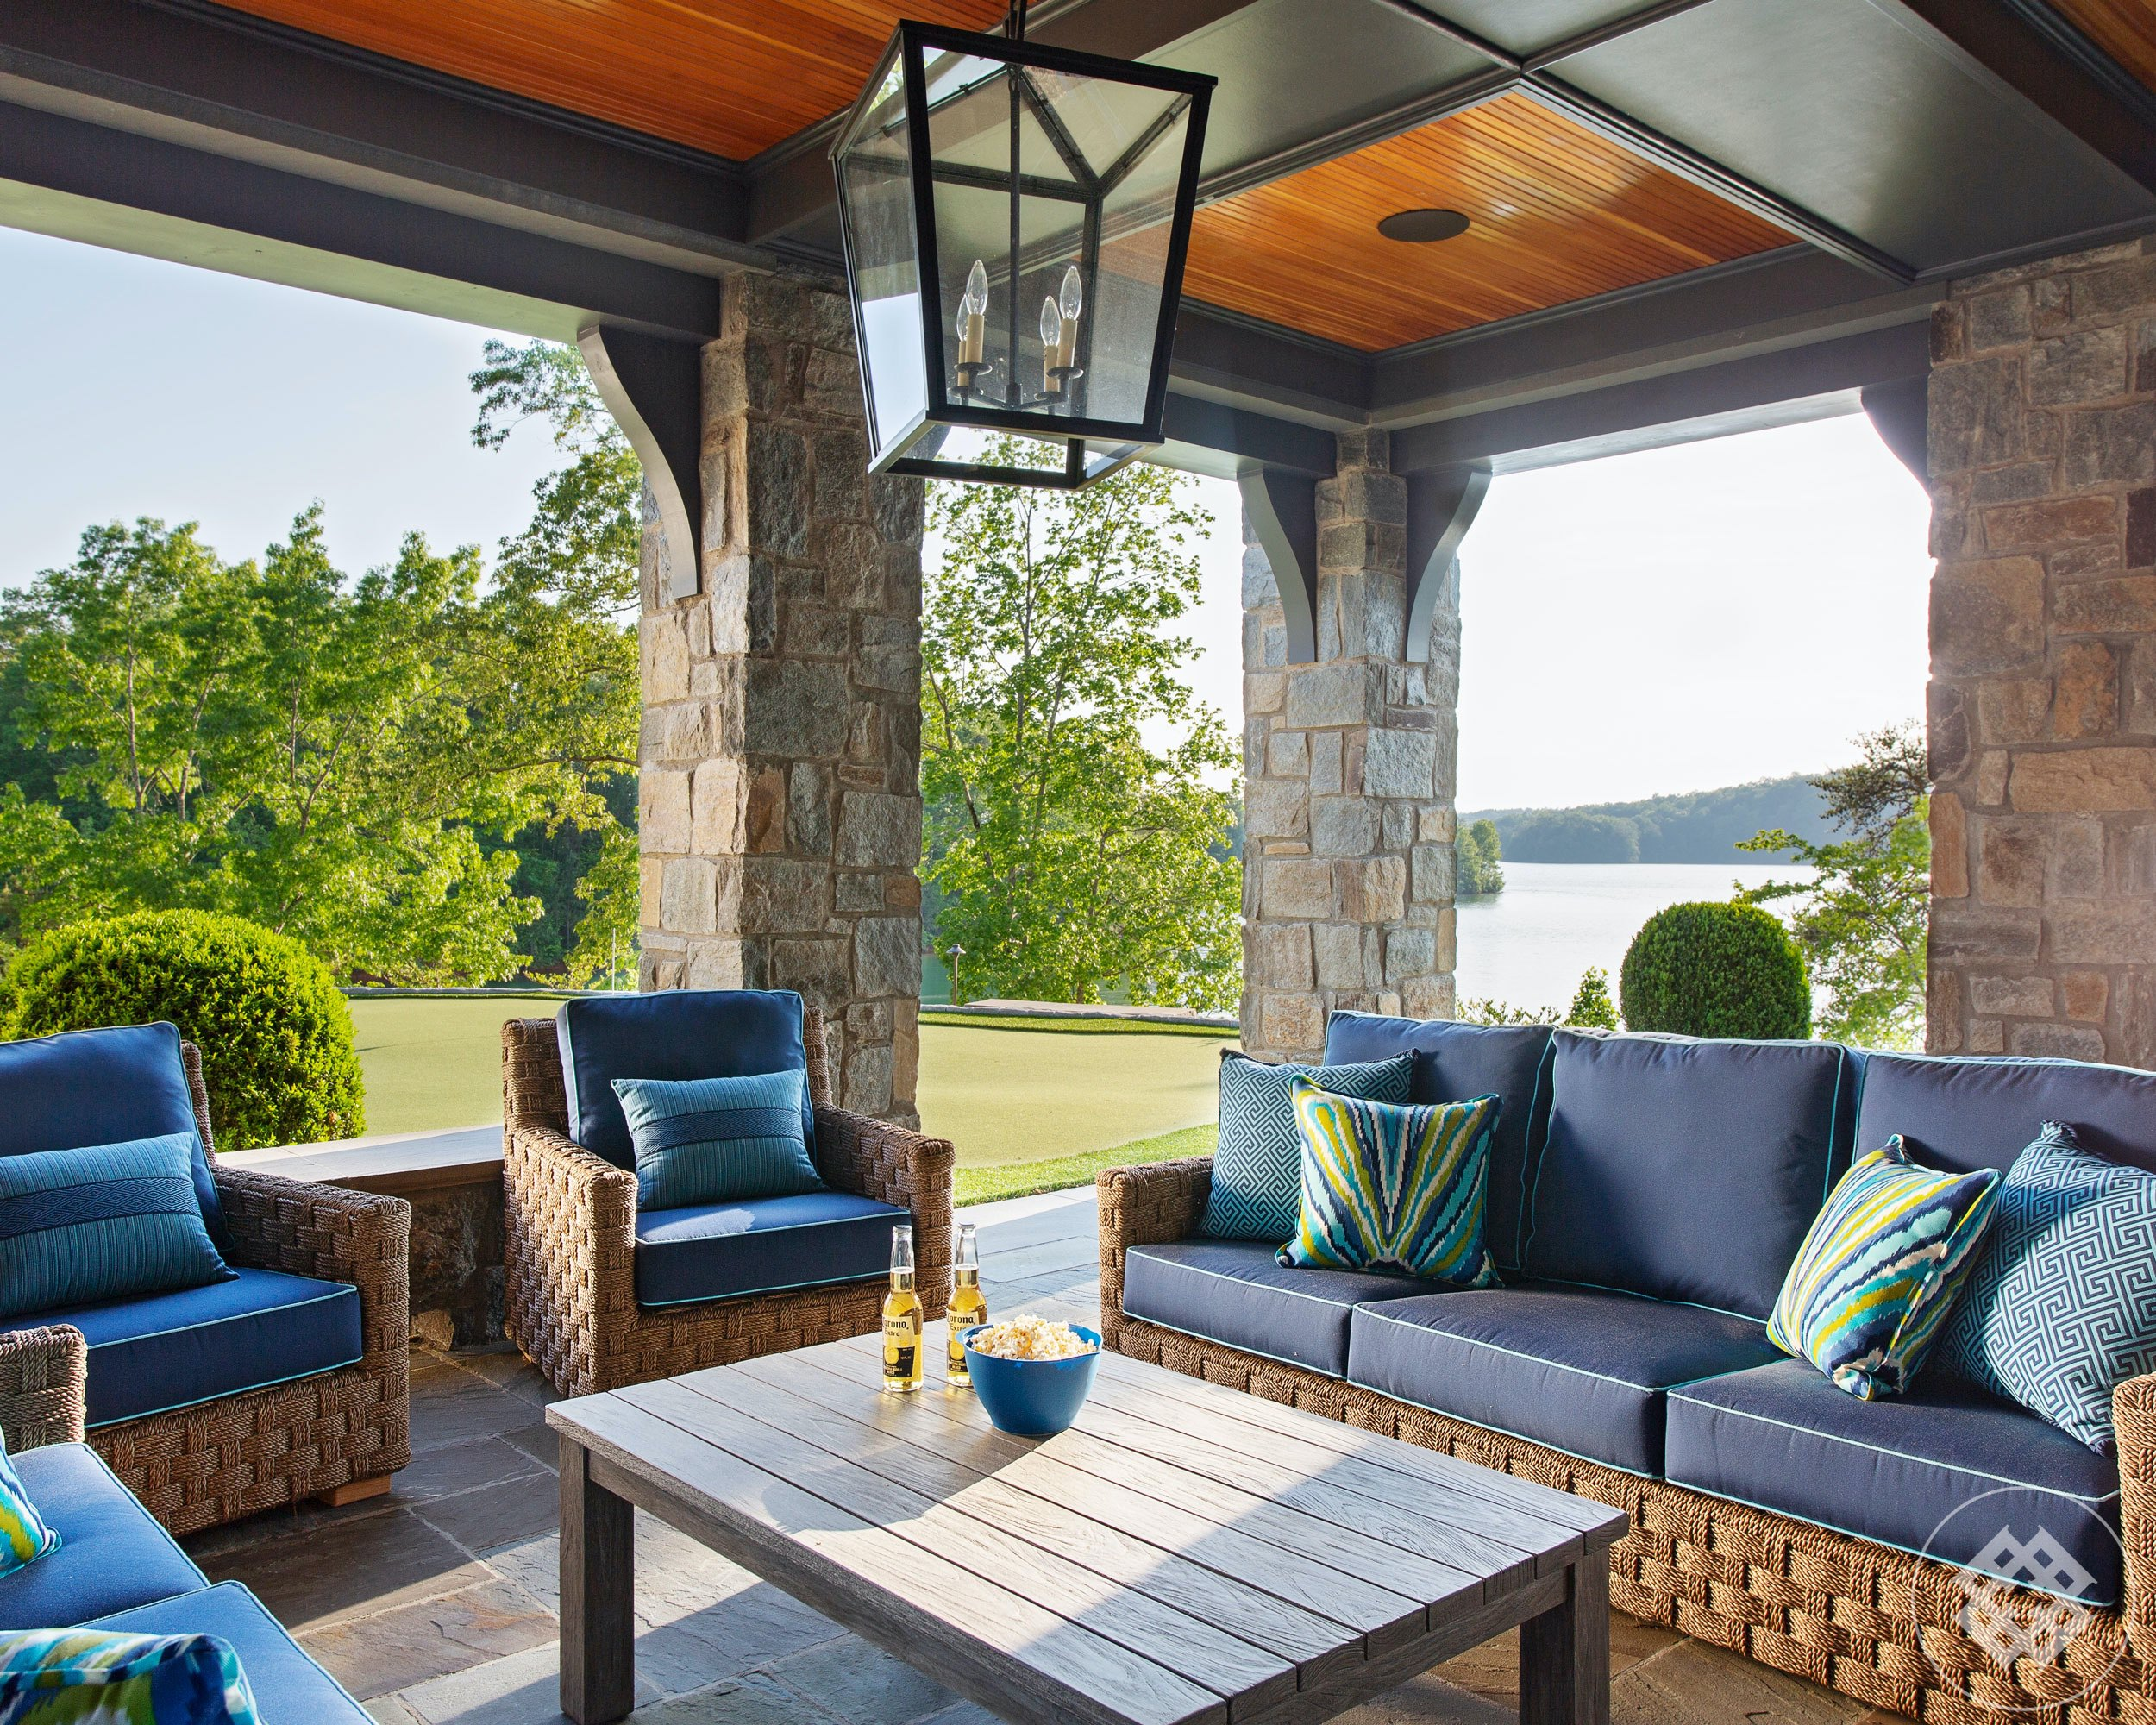 kkl-outdoor-living-overlooking-lake-keowee.jpg